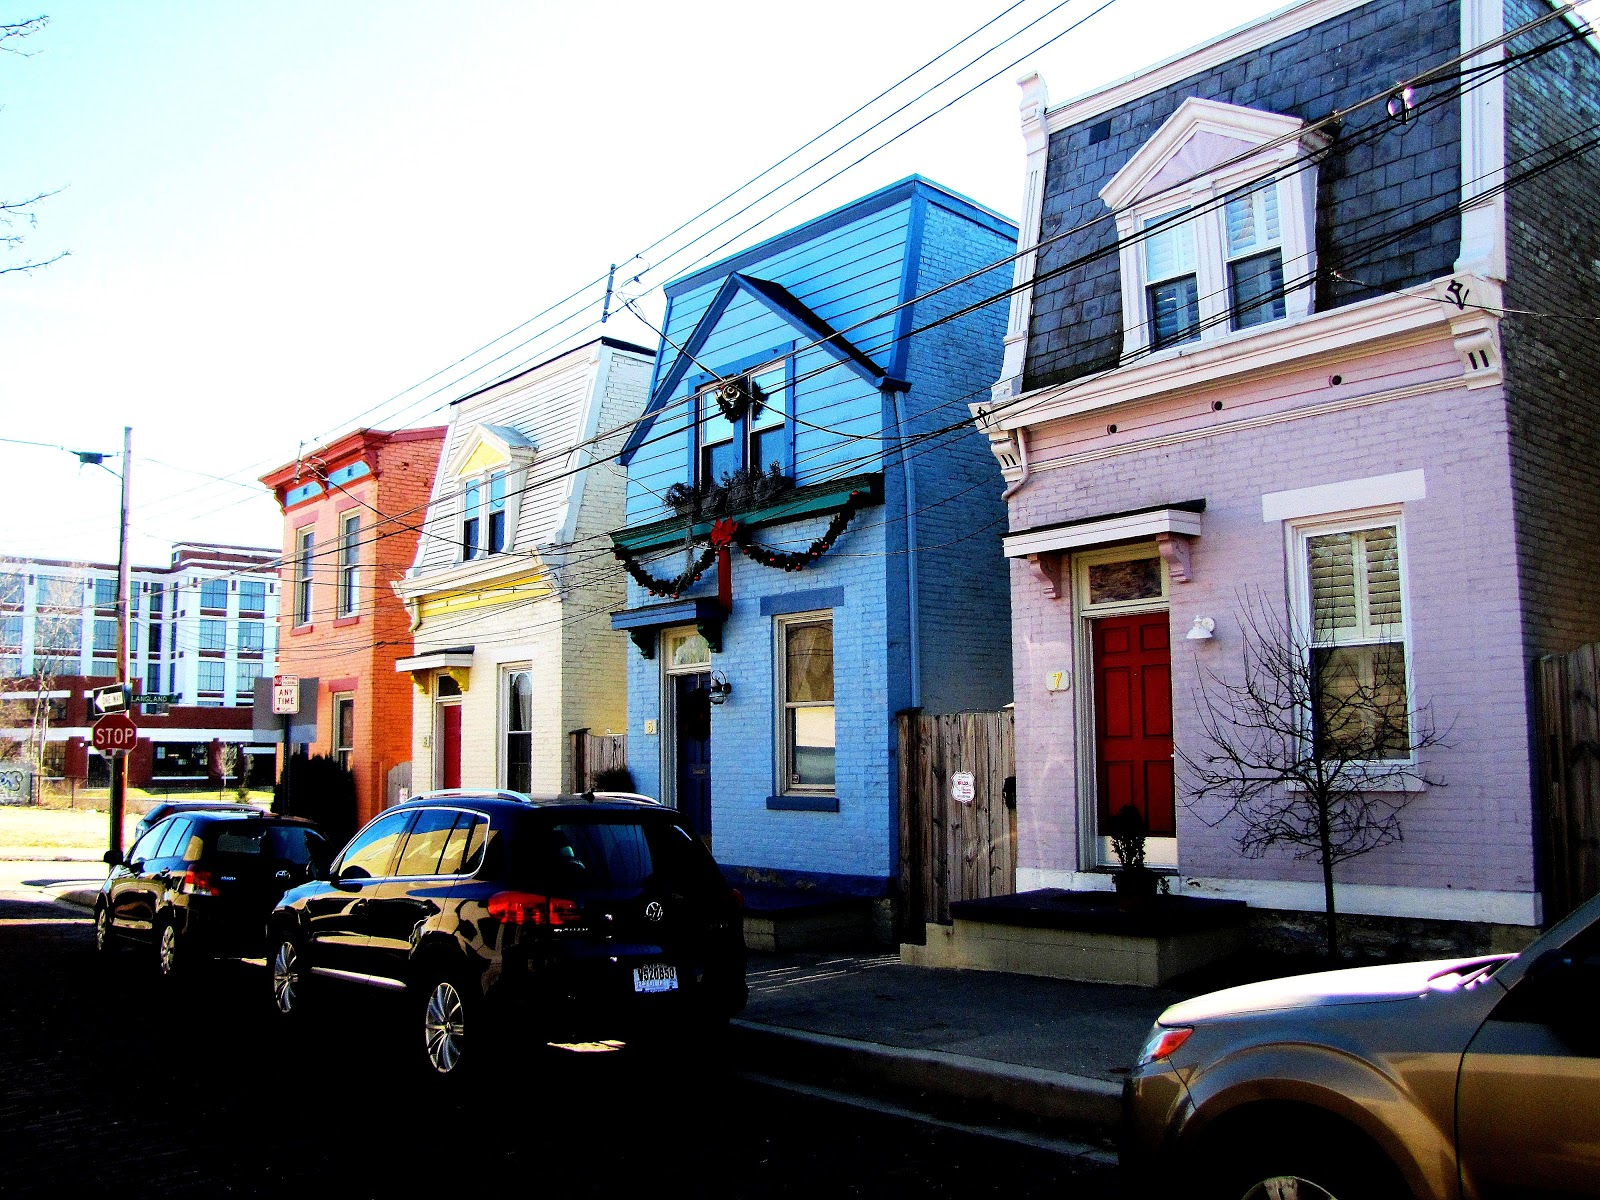 colored houses along a street